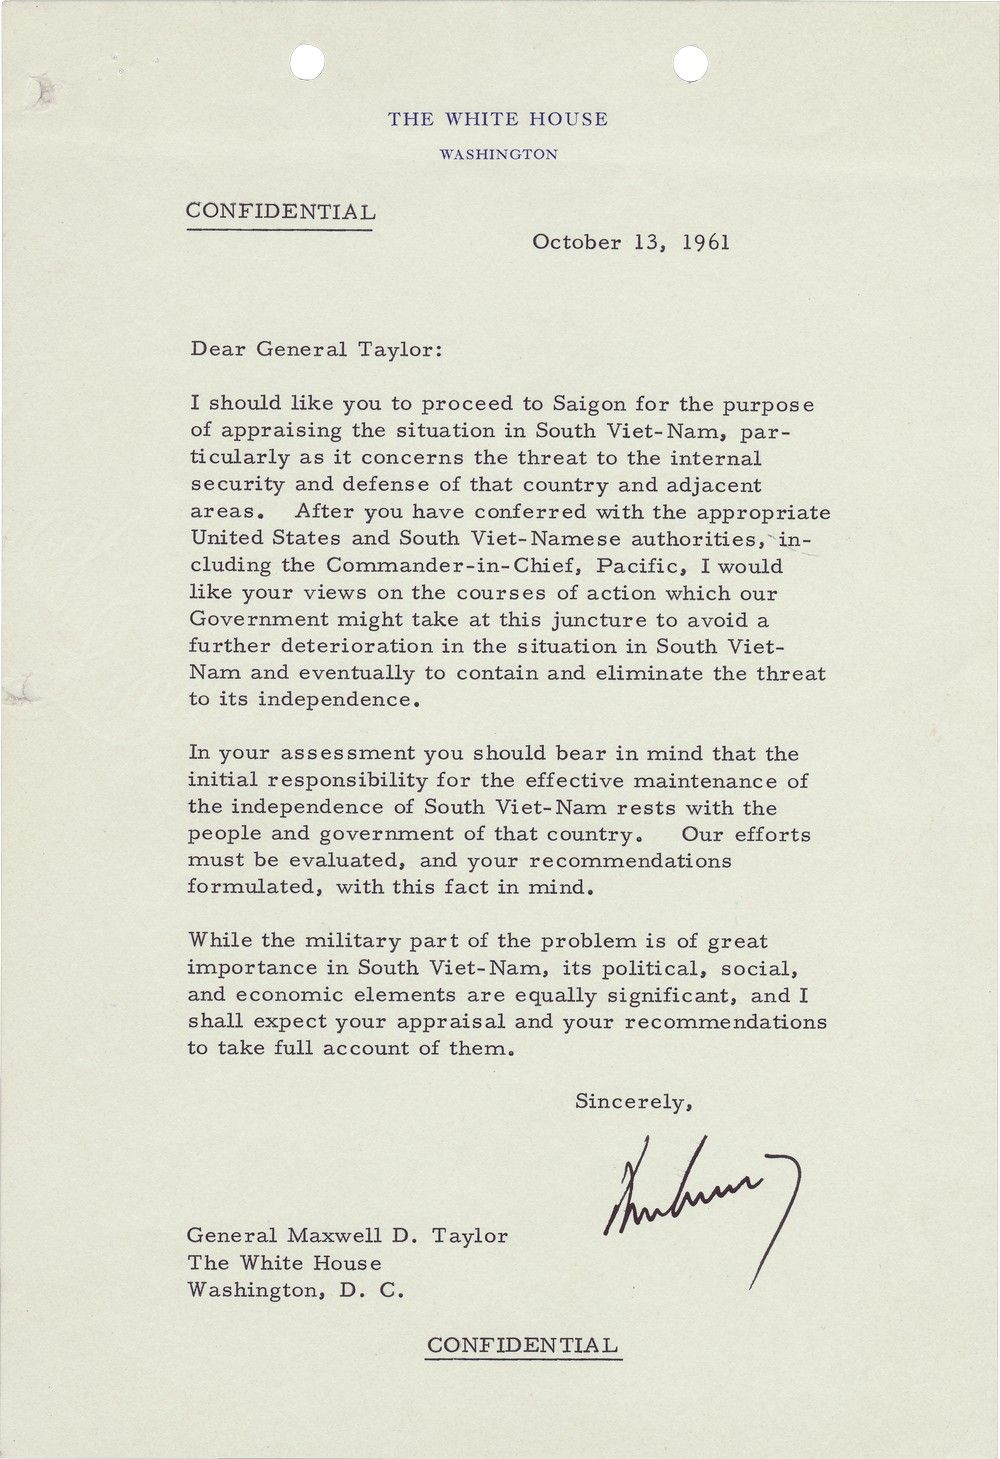 President Kennedy Sends General Maxwell Taylor to South Vietnam to Appraise the Situation